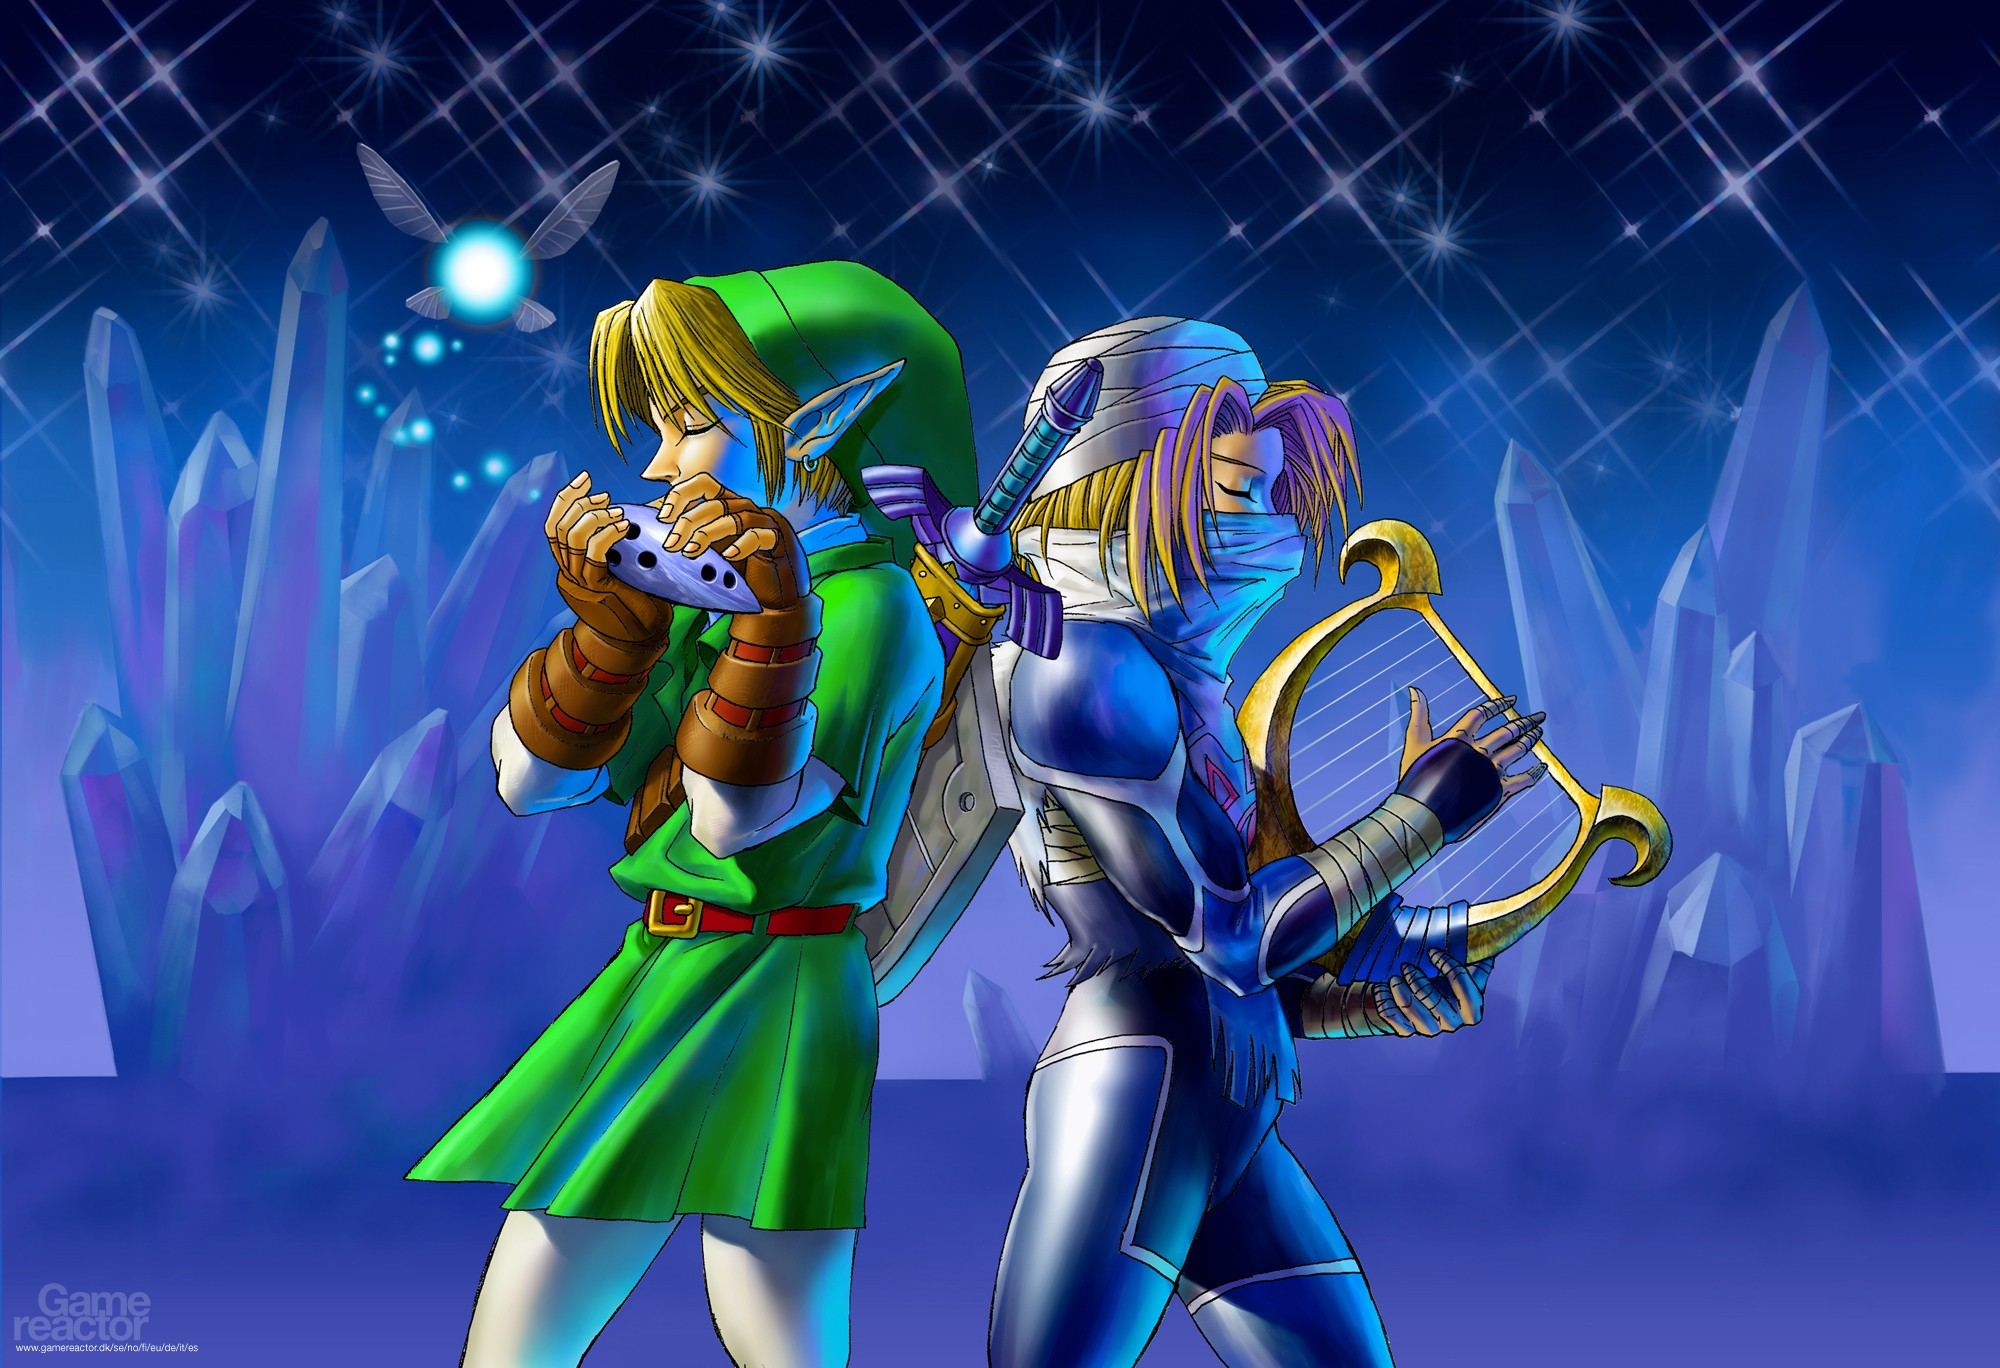 Pictures Of Massive Ocarina Of Time Art Gallery 18 19